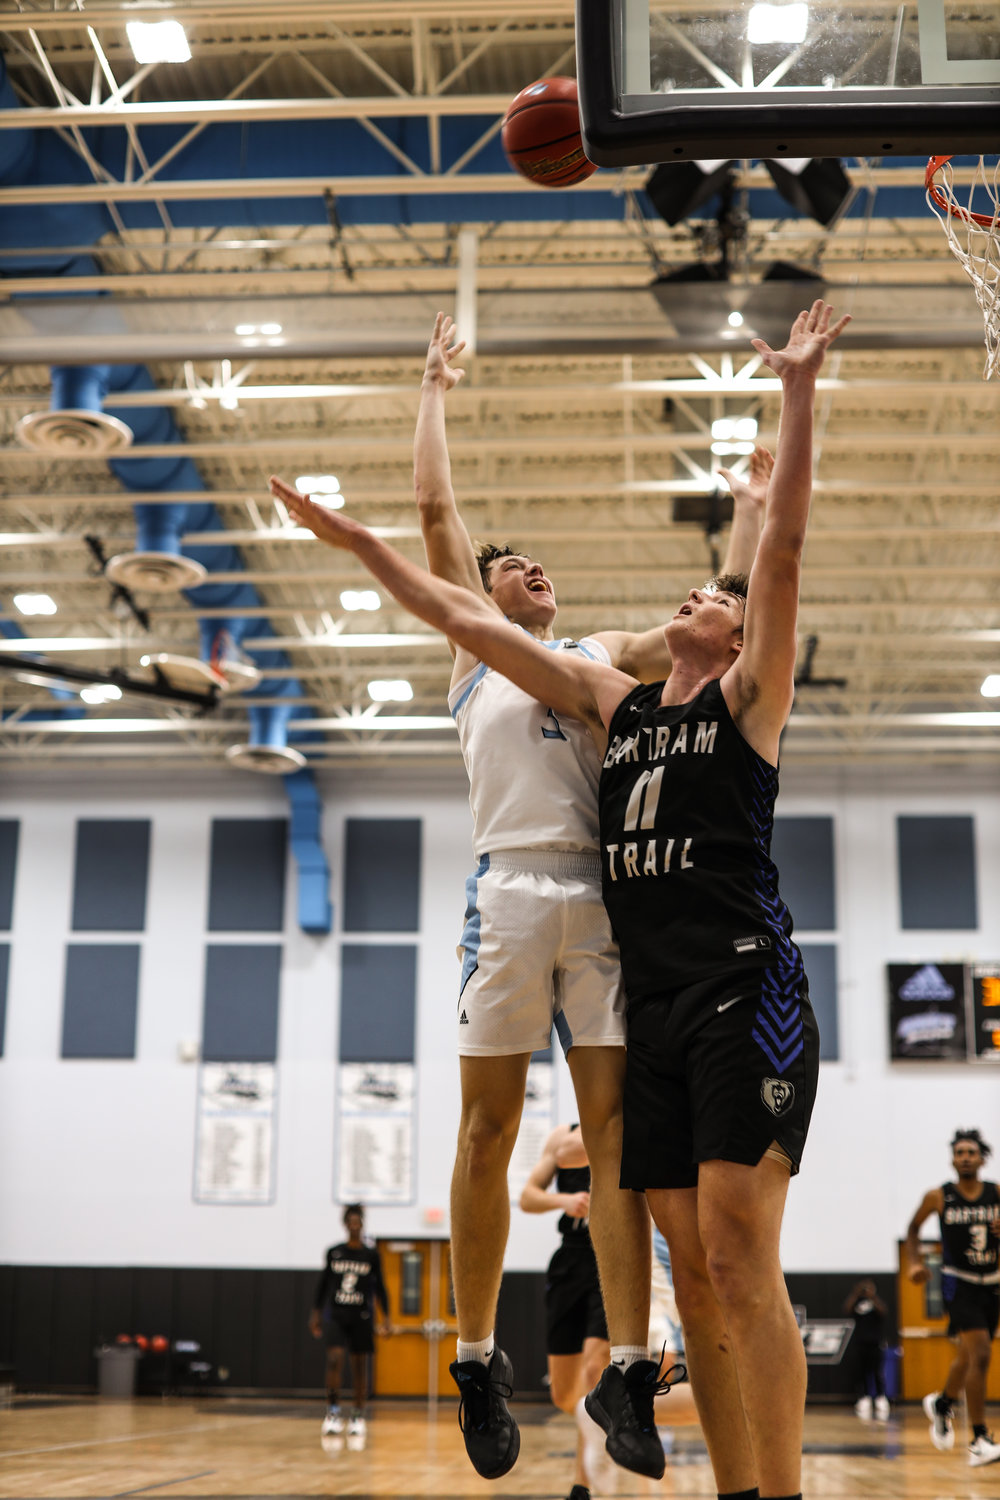 Junior Luke Pirris (left) goes up for a rebound against Bartram Trail center Alijah Kuehl last Friday.